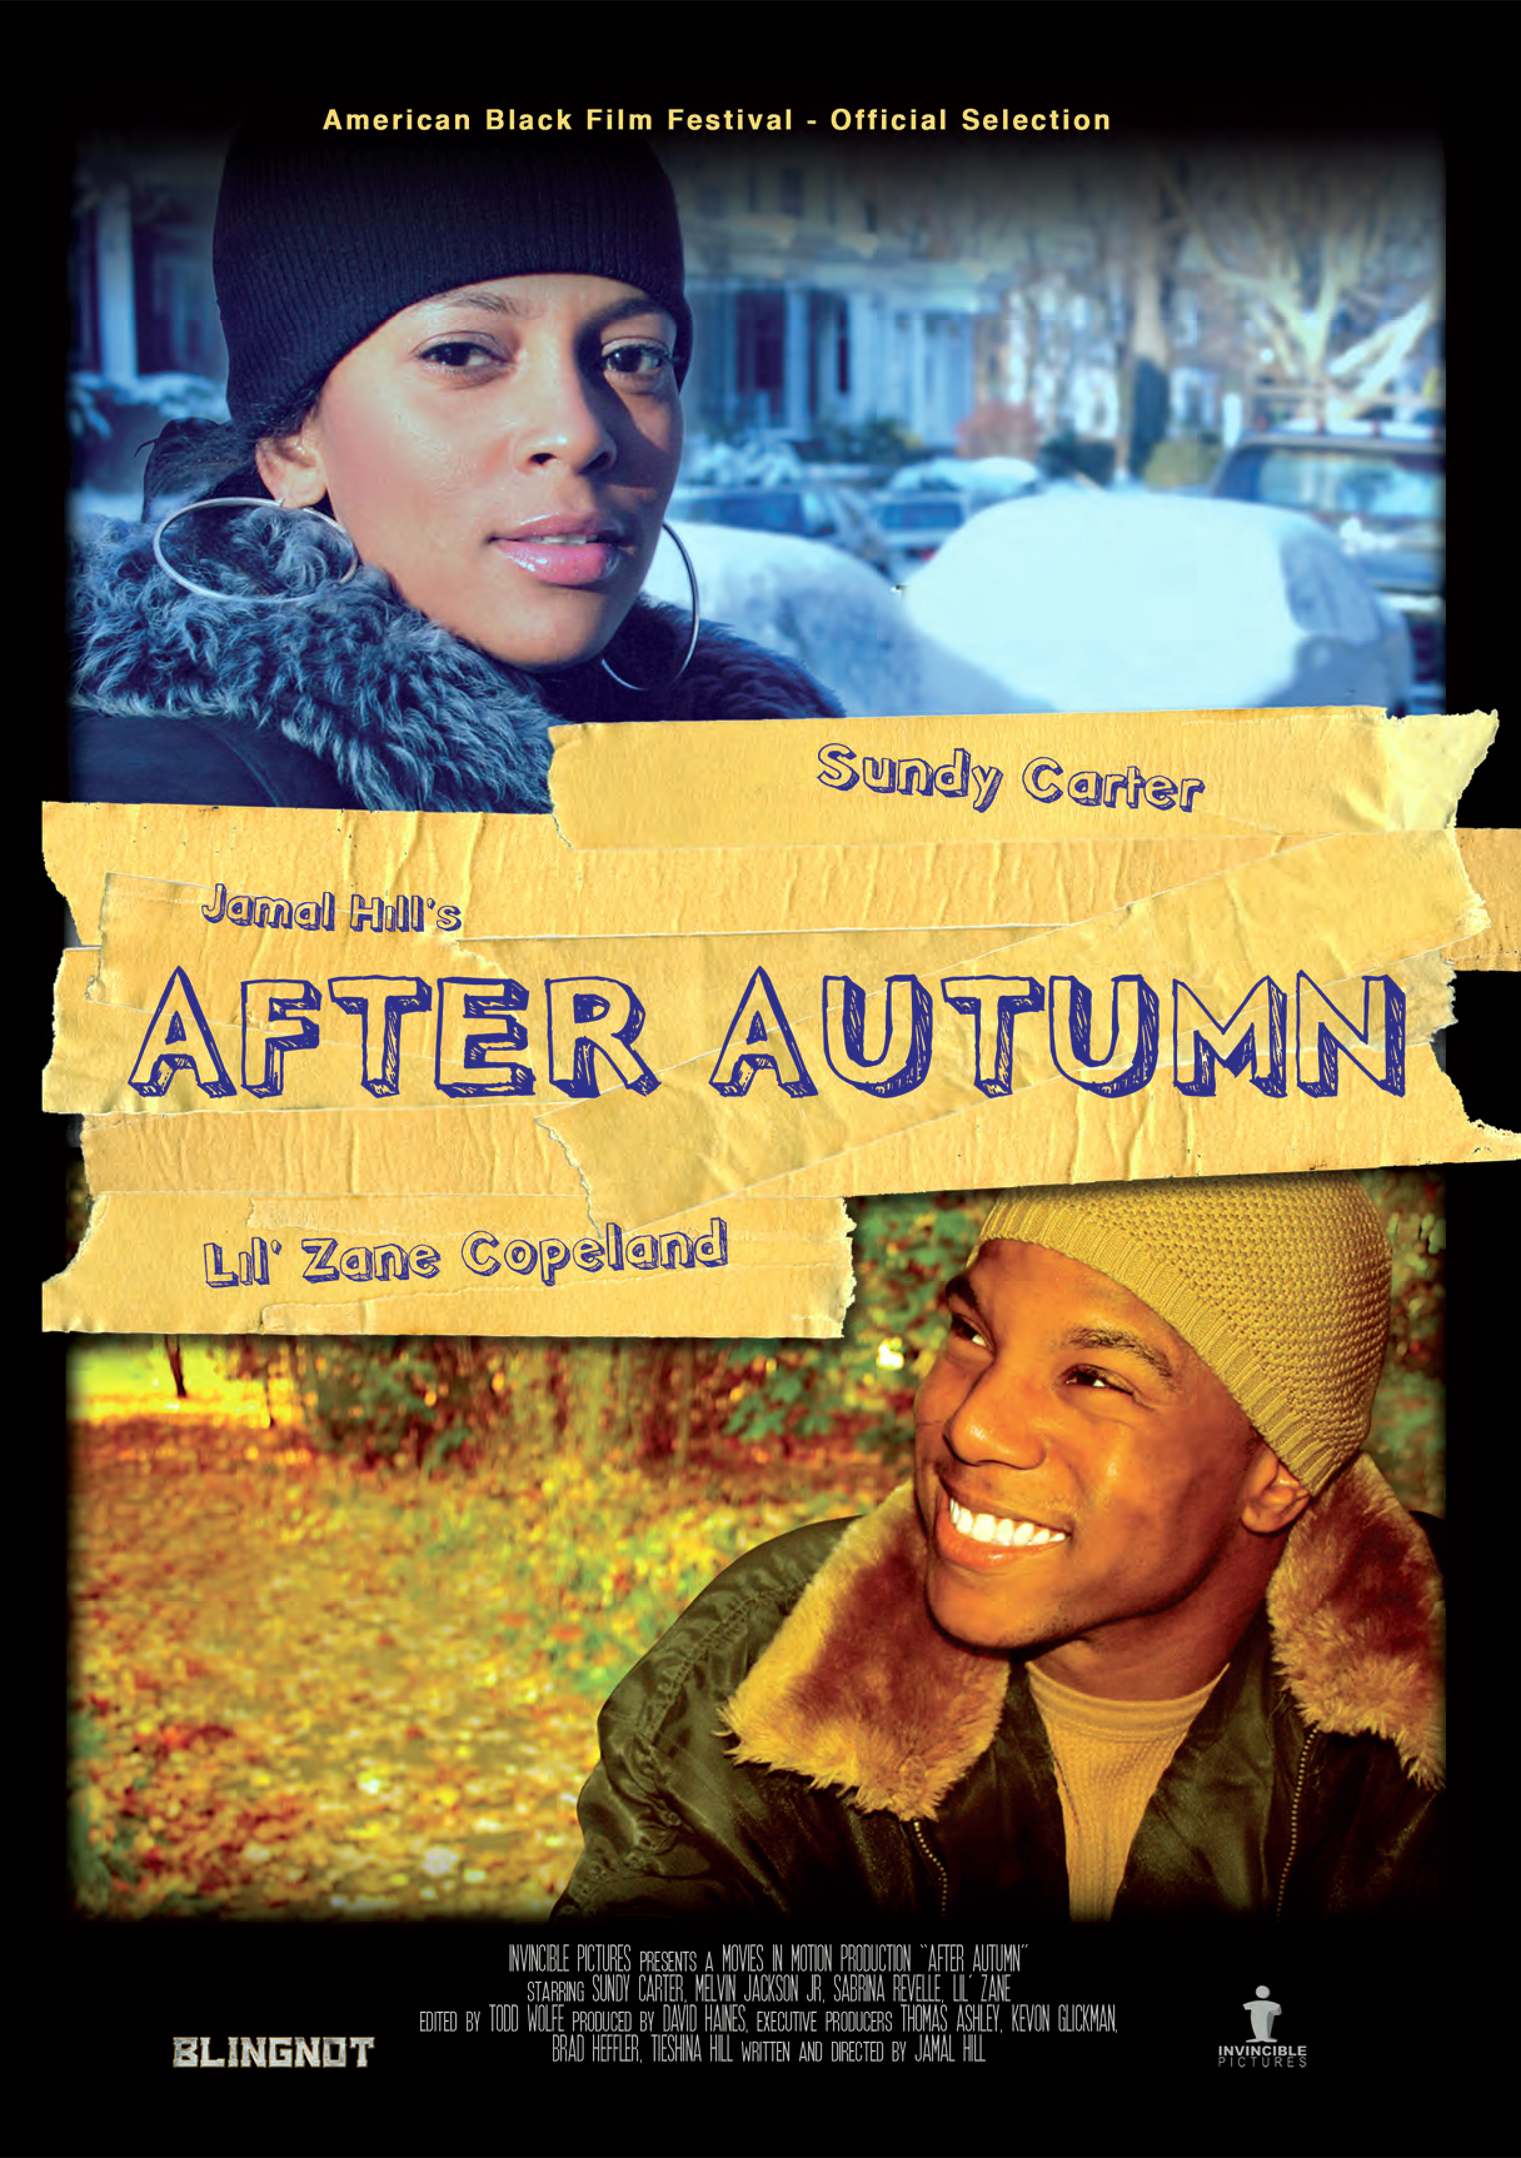 after autumn releases allmovie